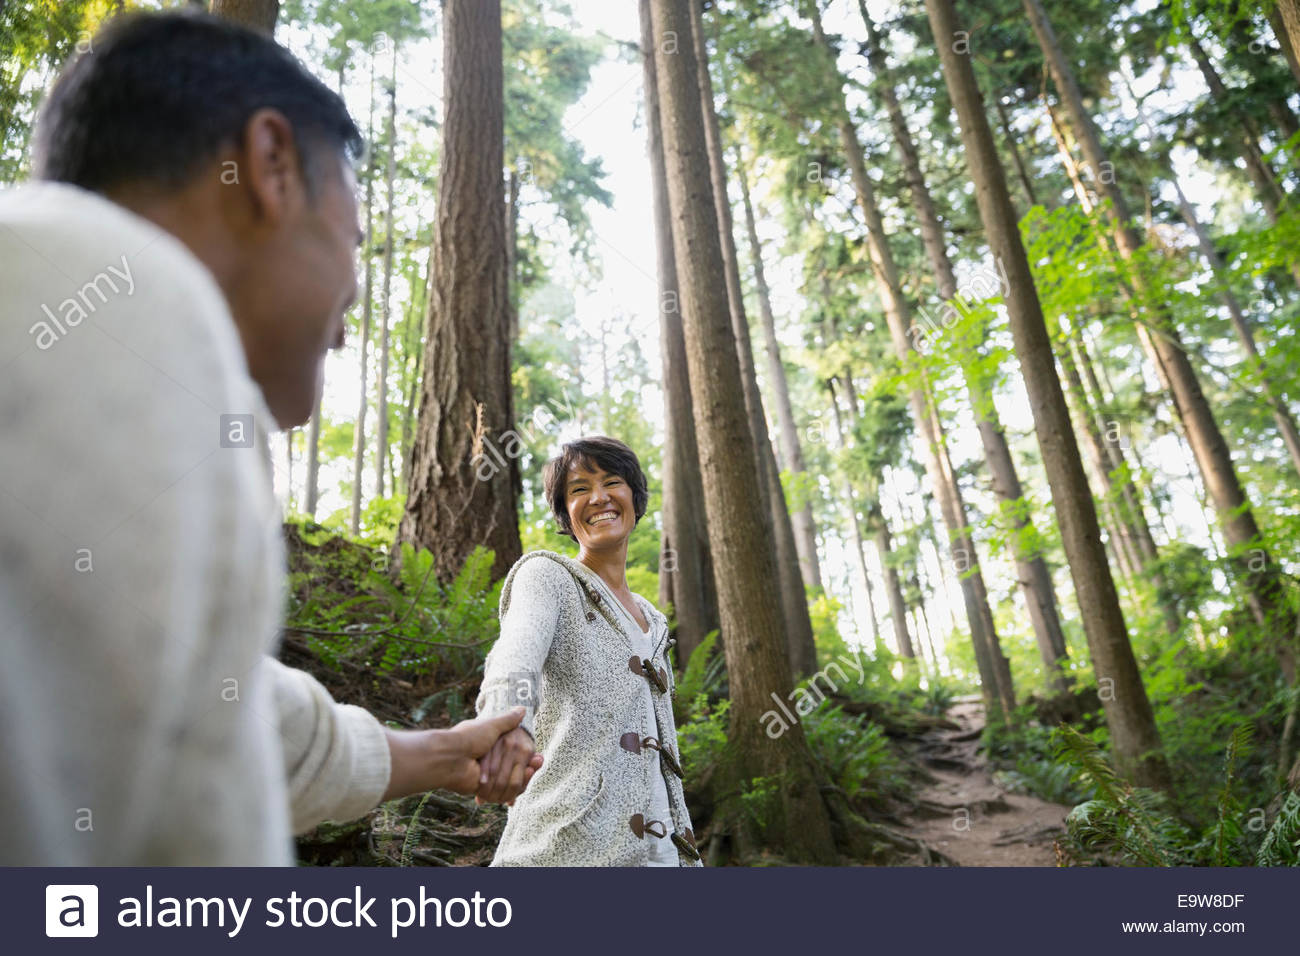 Couple holding hands on trail in woods - Stock Image